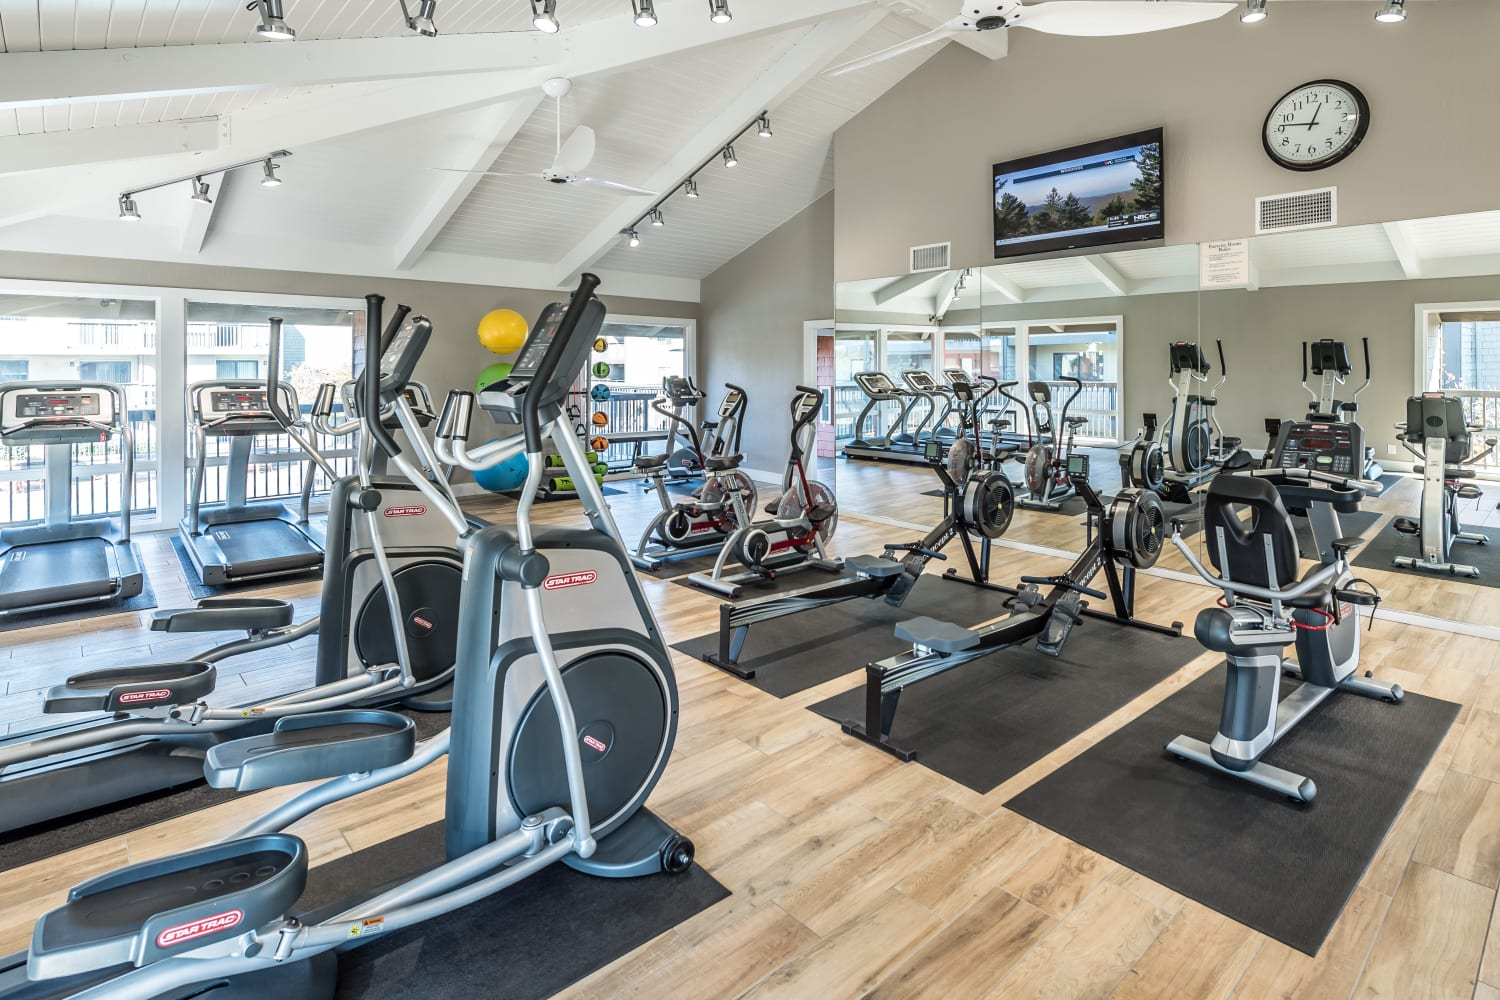 Fitness center at Harbor Cove Apartments in Foster City, California